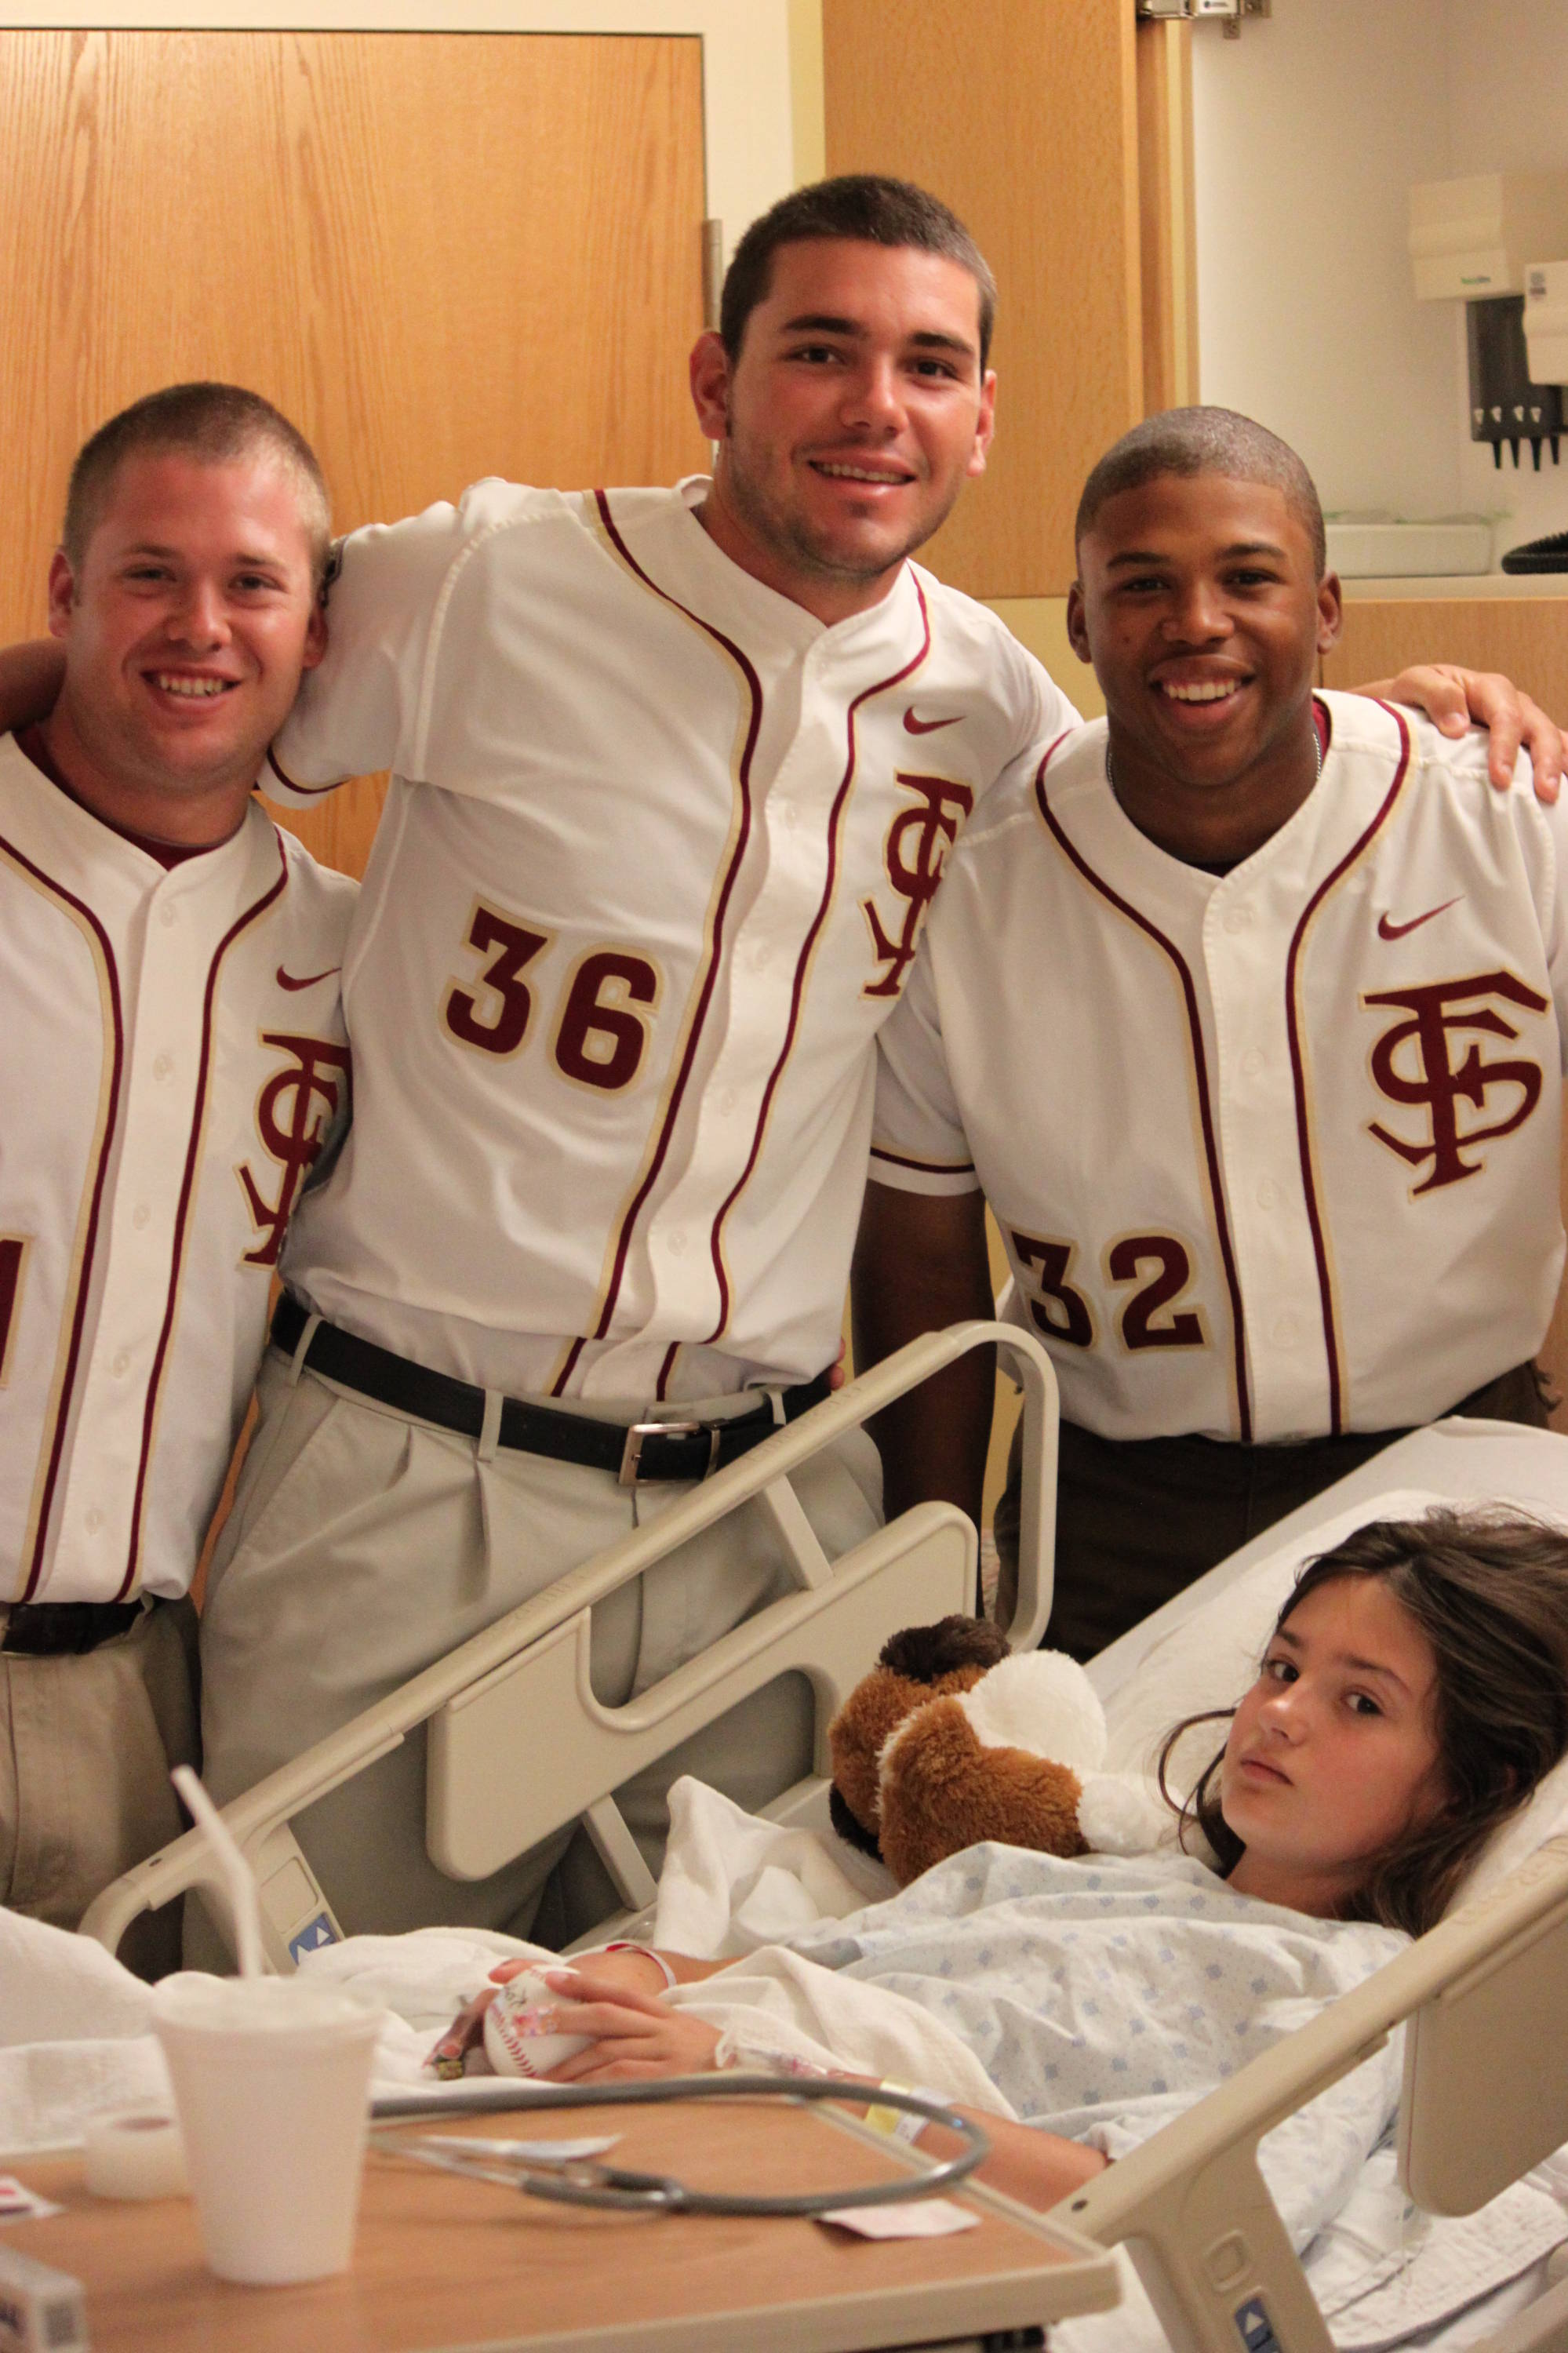 Drew Strouse, Robby Scott and Sherman Johnson on a visit to the Children's Hospital in Omaha